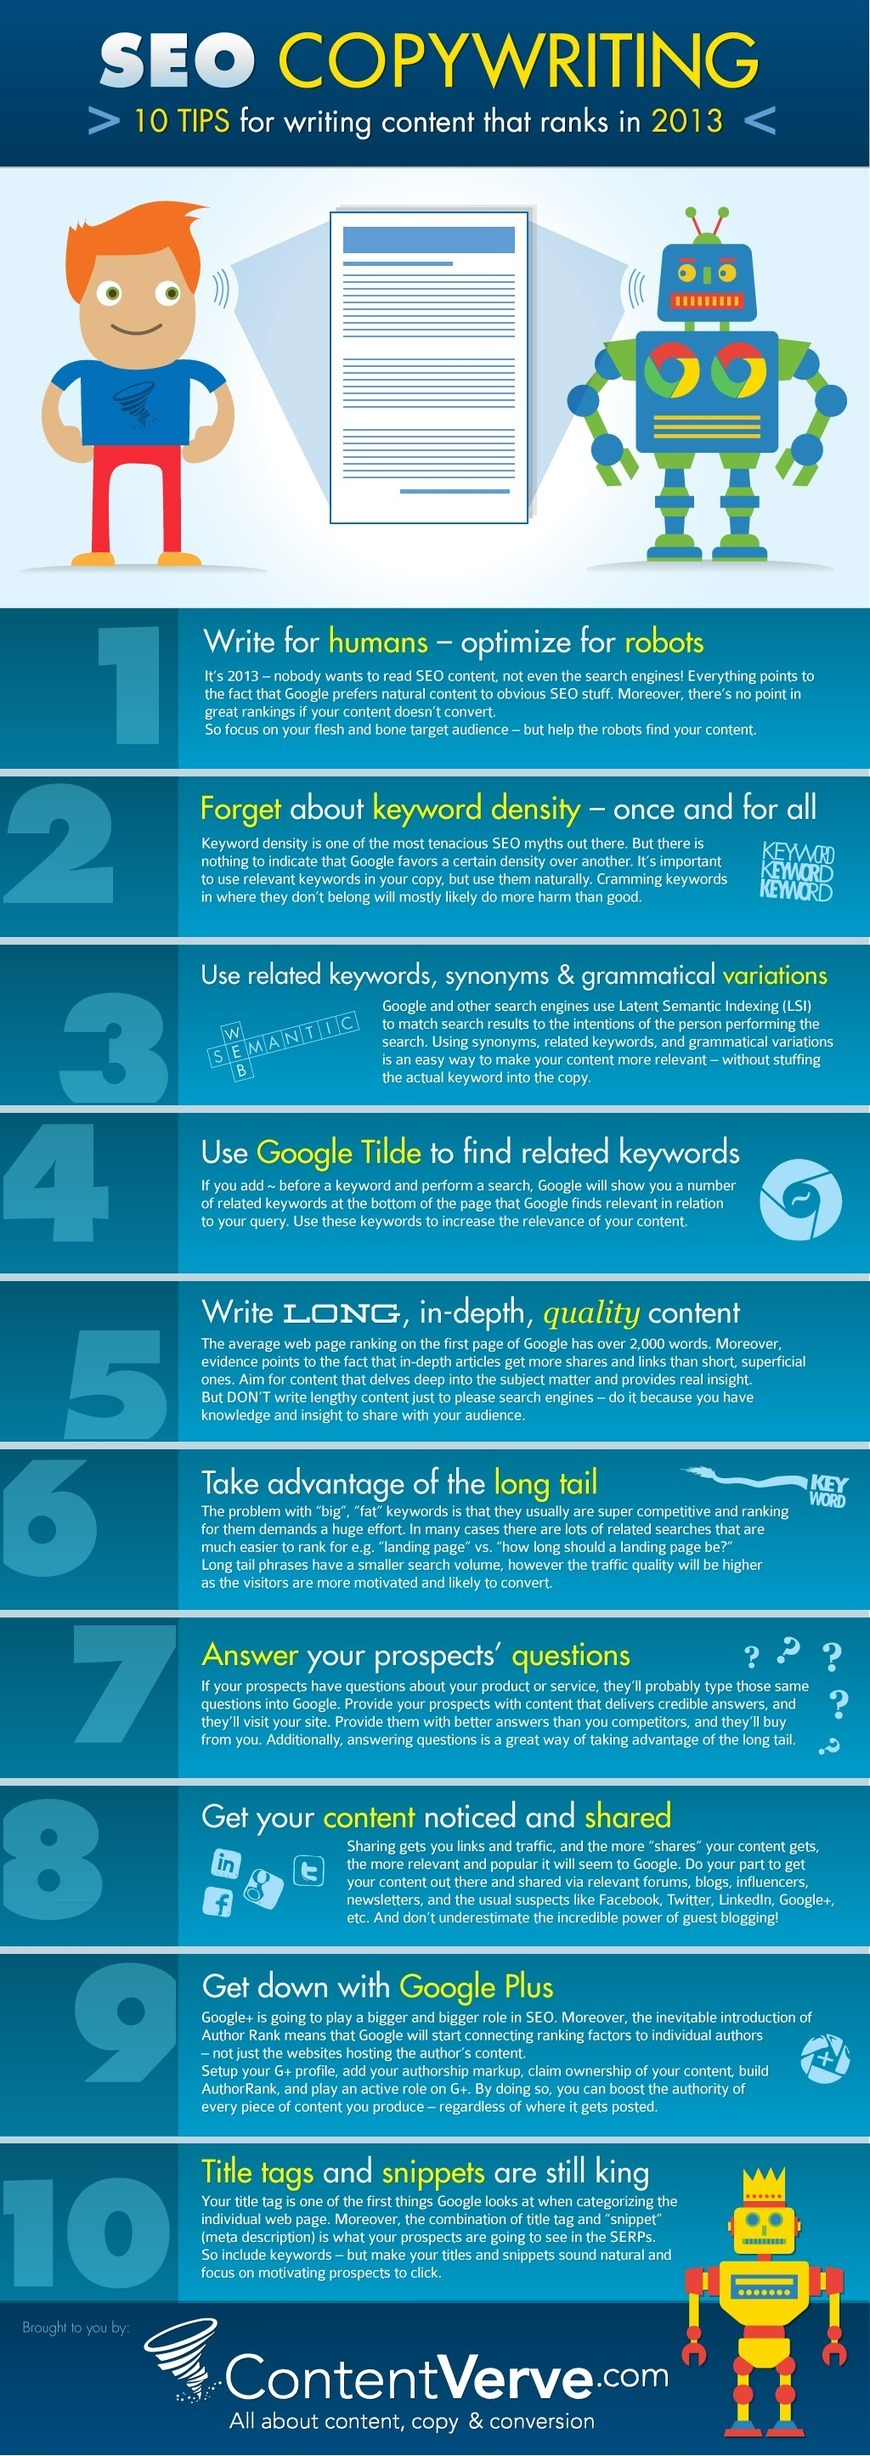 15 SEO Writing Tips [5 Infographic, 5 Marty]